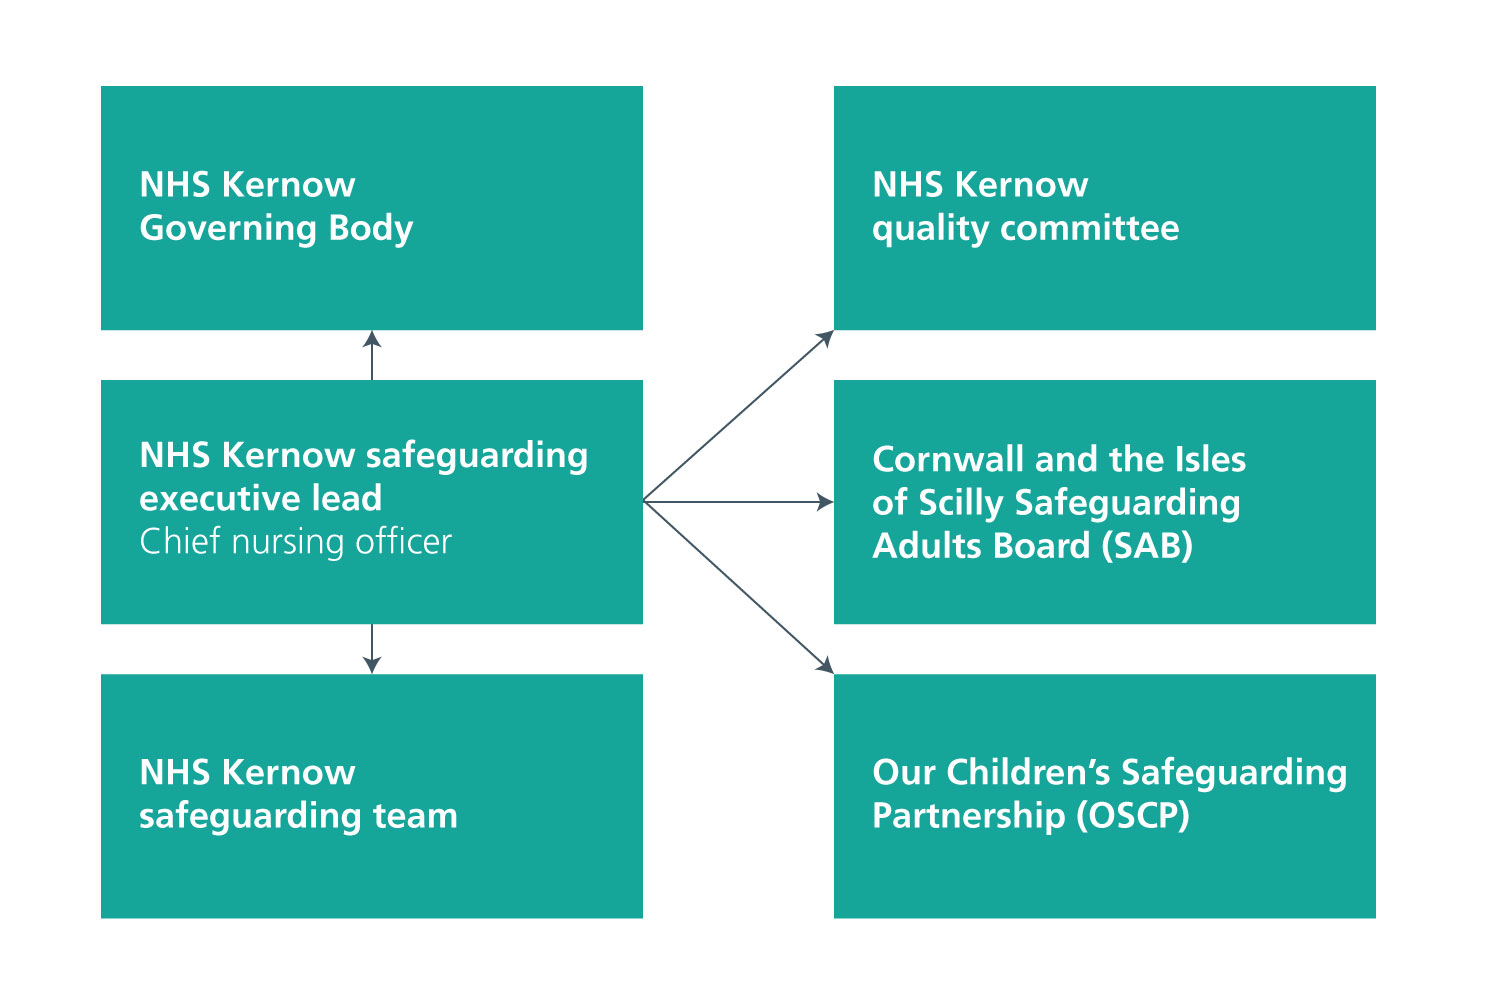 Safeguarding adult and children governance structure